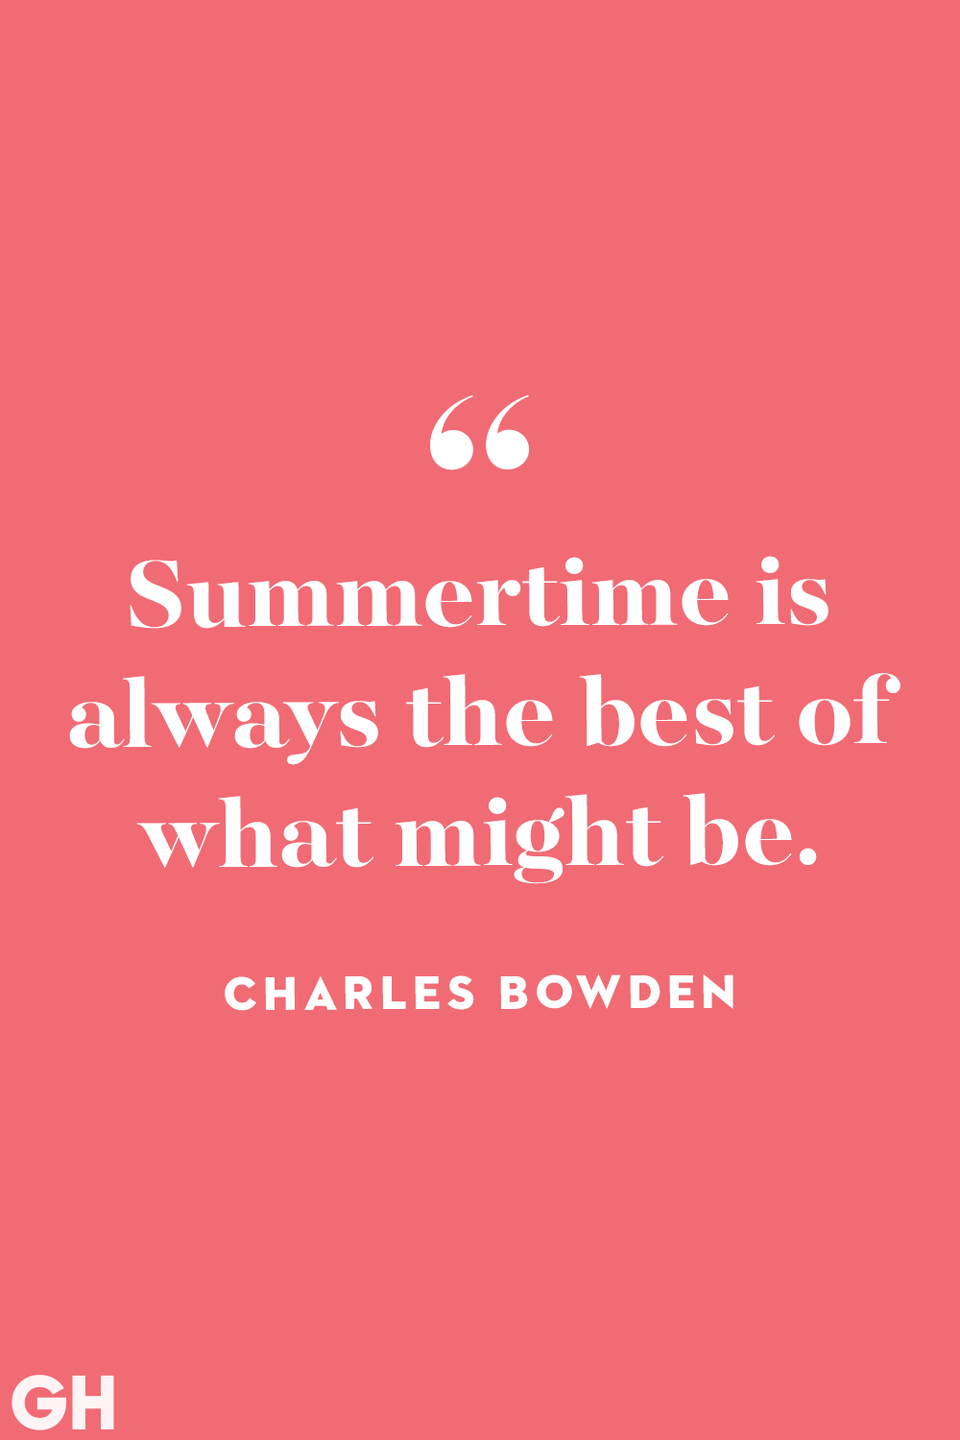 <p>Summertime is always the best of what might be.</p>